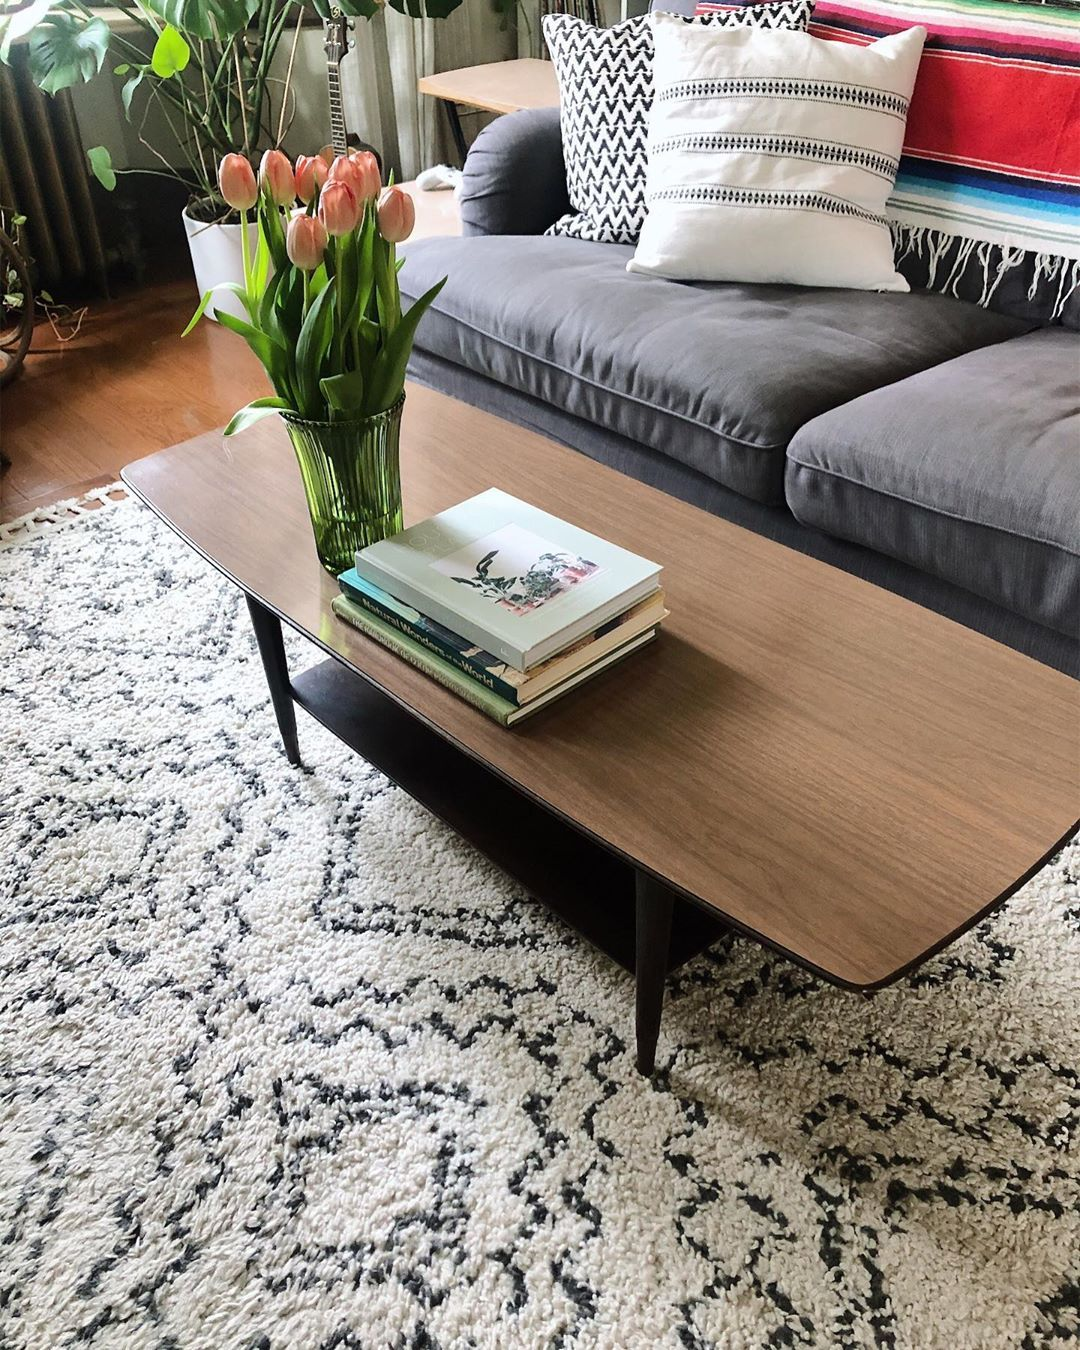 Good Day Vintage On Instagram This Vintage Mid Century Modern Coffee Table Is Just Too Good Coffee Table Mid Century Modern Coffee Table Modern Coffee Tables [ 1350 x 1080 Pixel ]